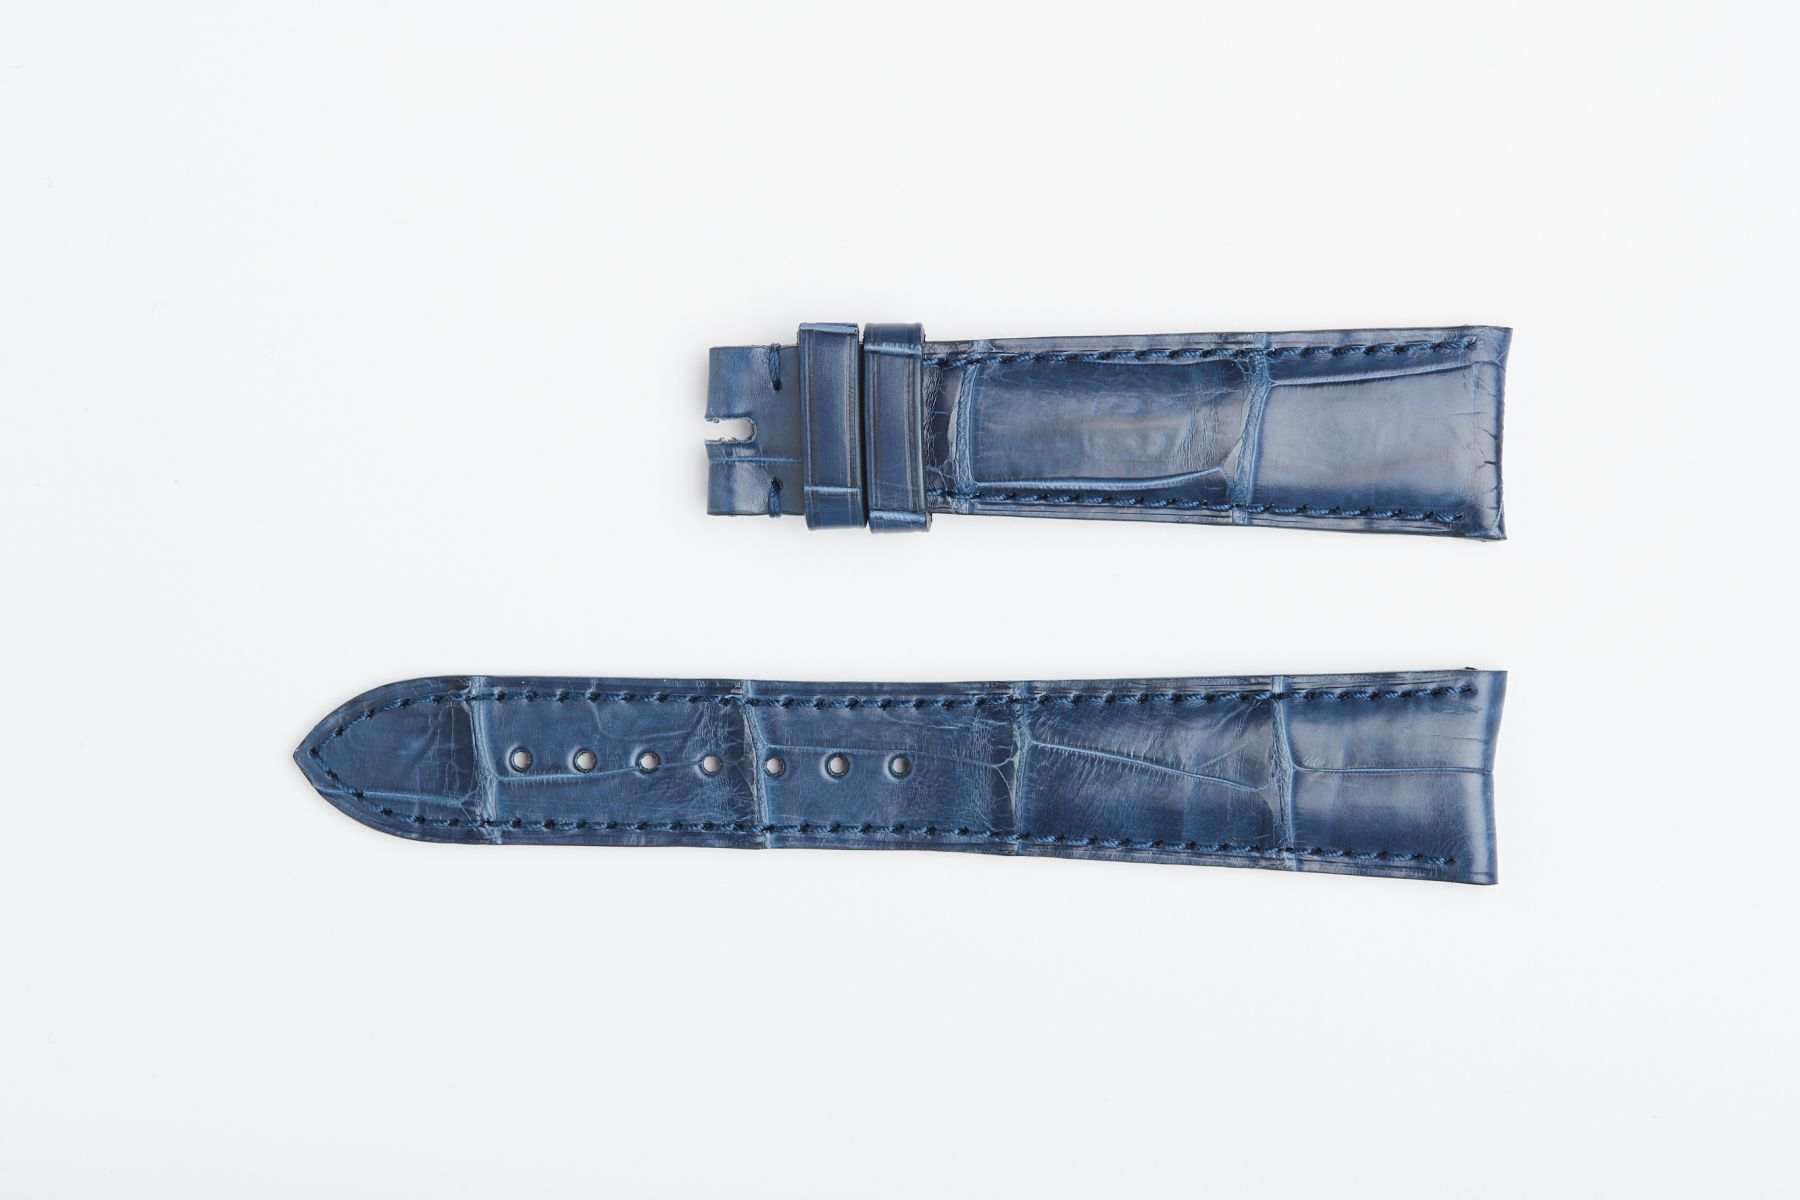 Rolex Cellini Dual / Time / Date Custom made strap in Blue Jeans Matte Alligator leather. Curved lugs